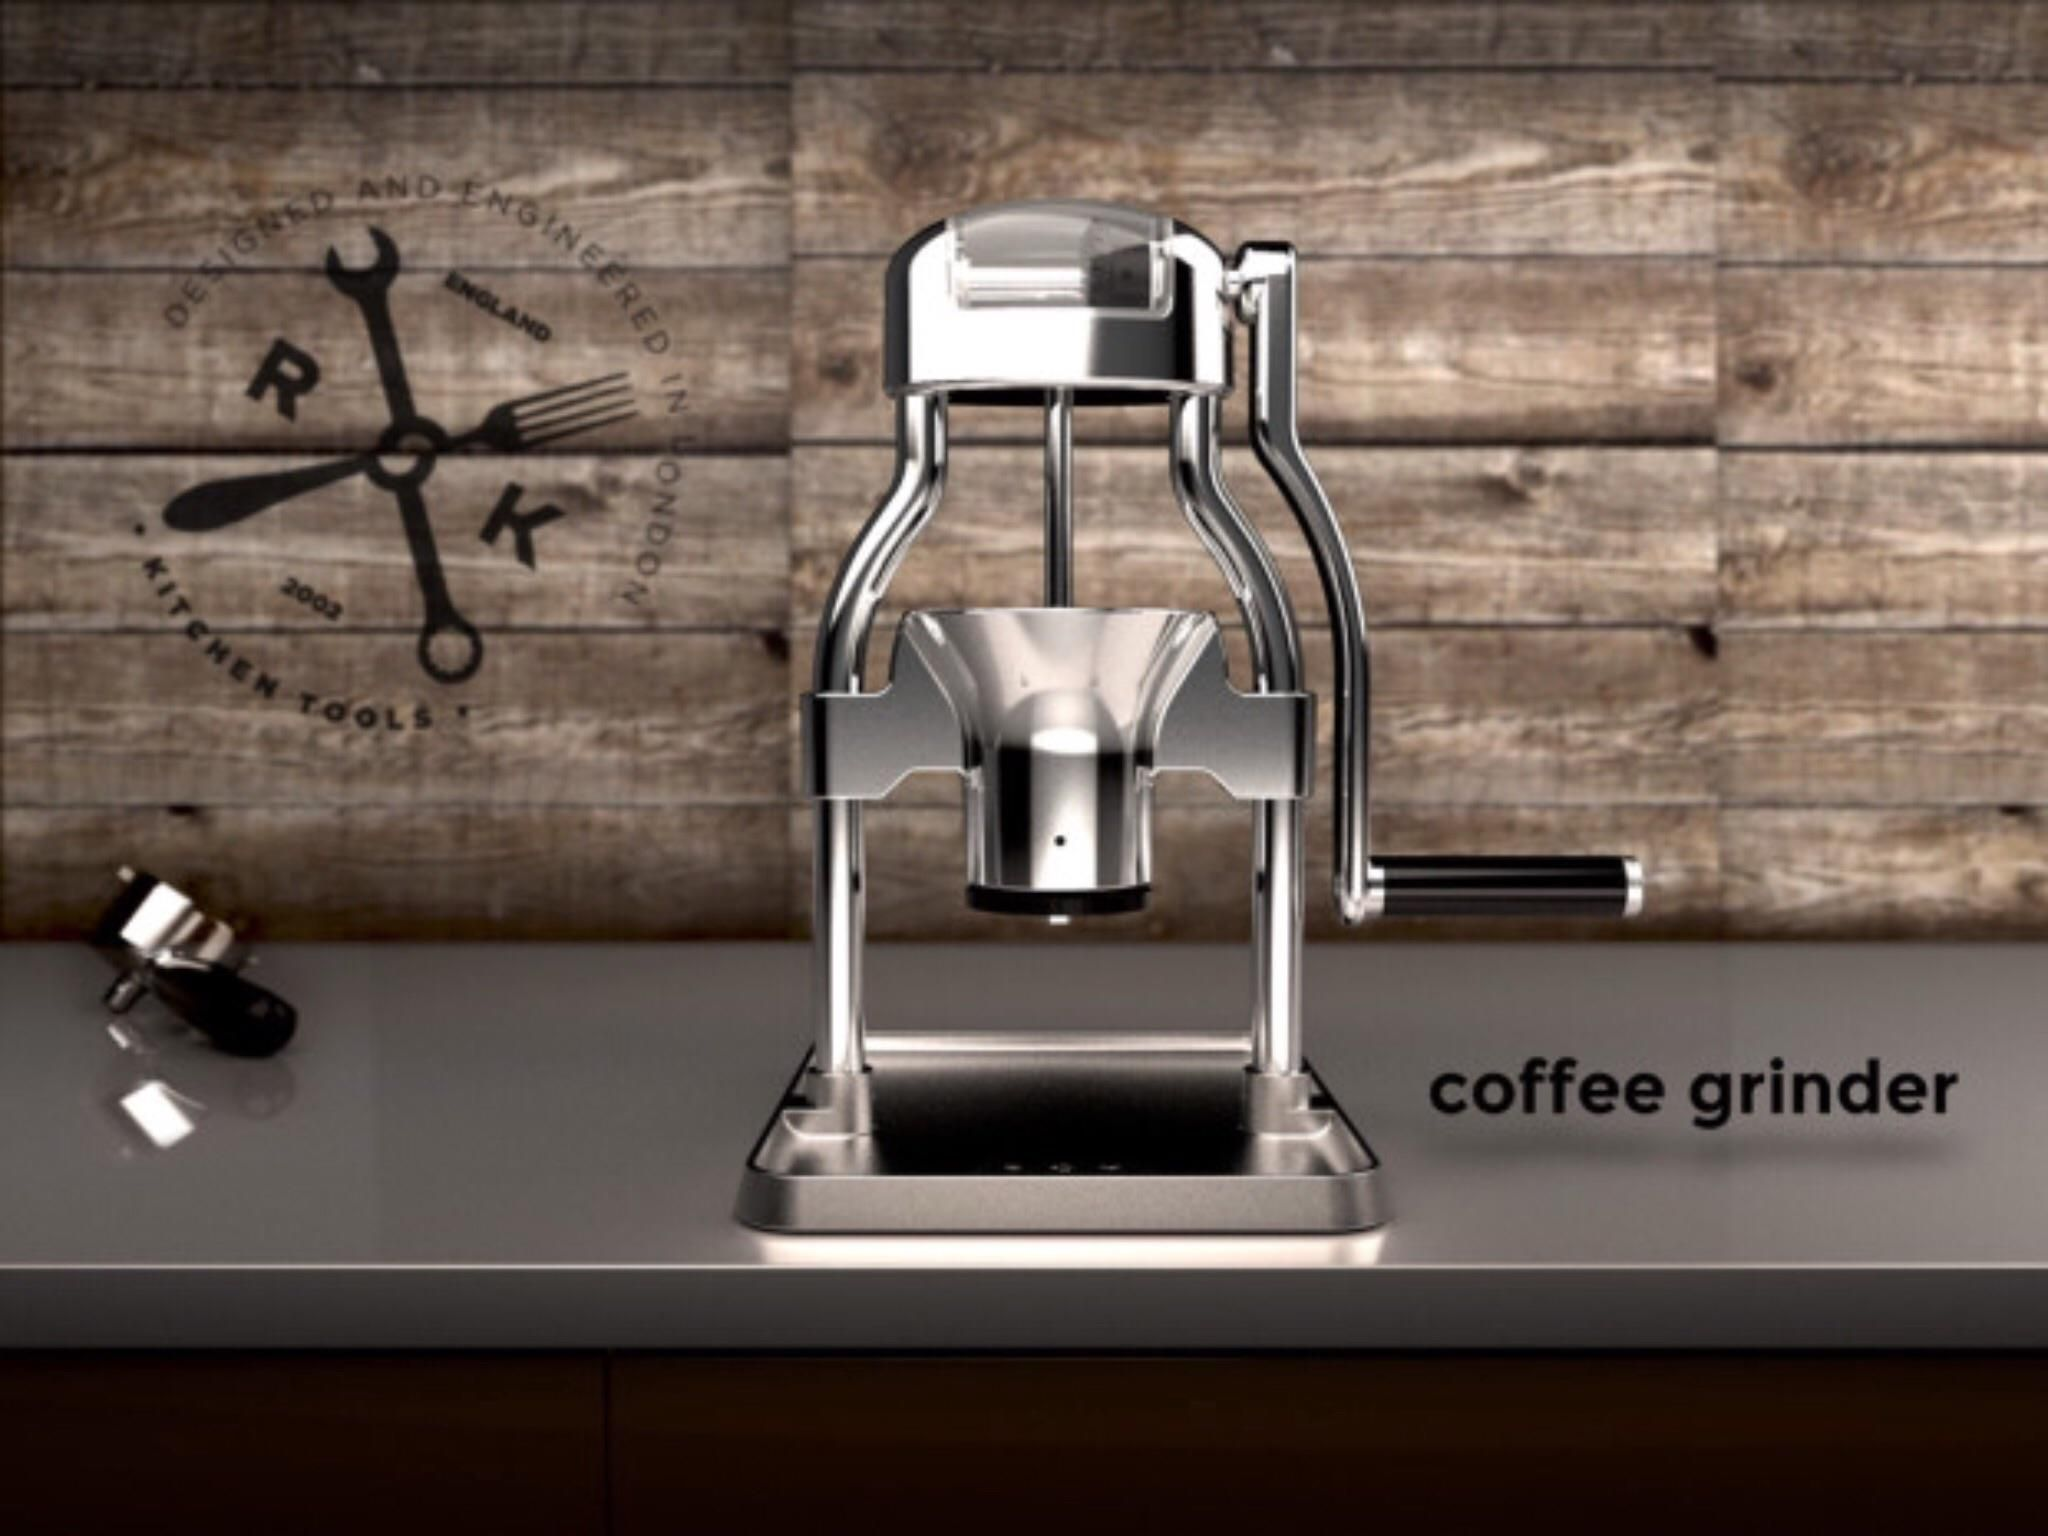 Coffee gifts for the holidays | Coffee grinder, Coffee ...